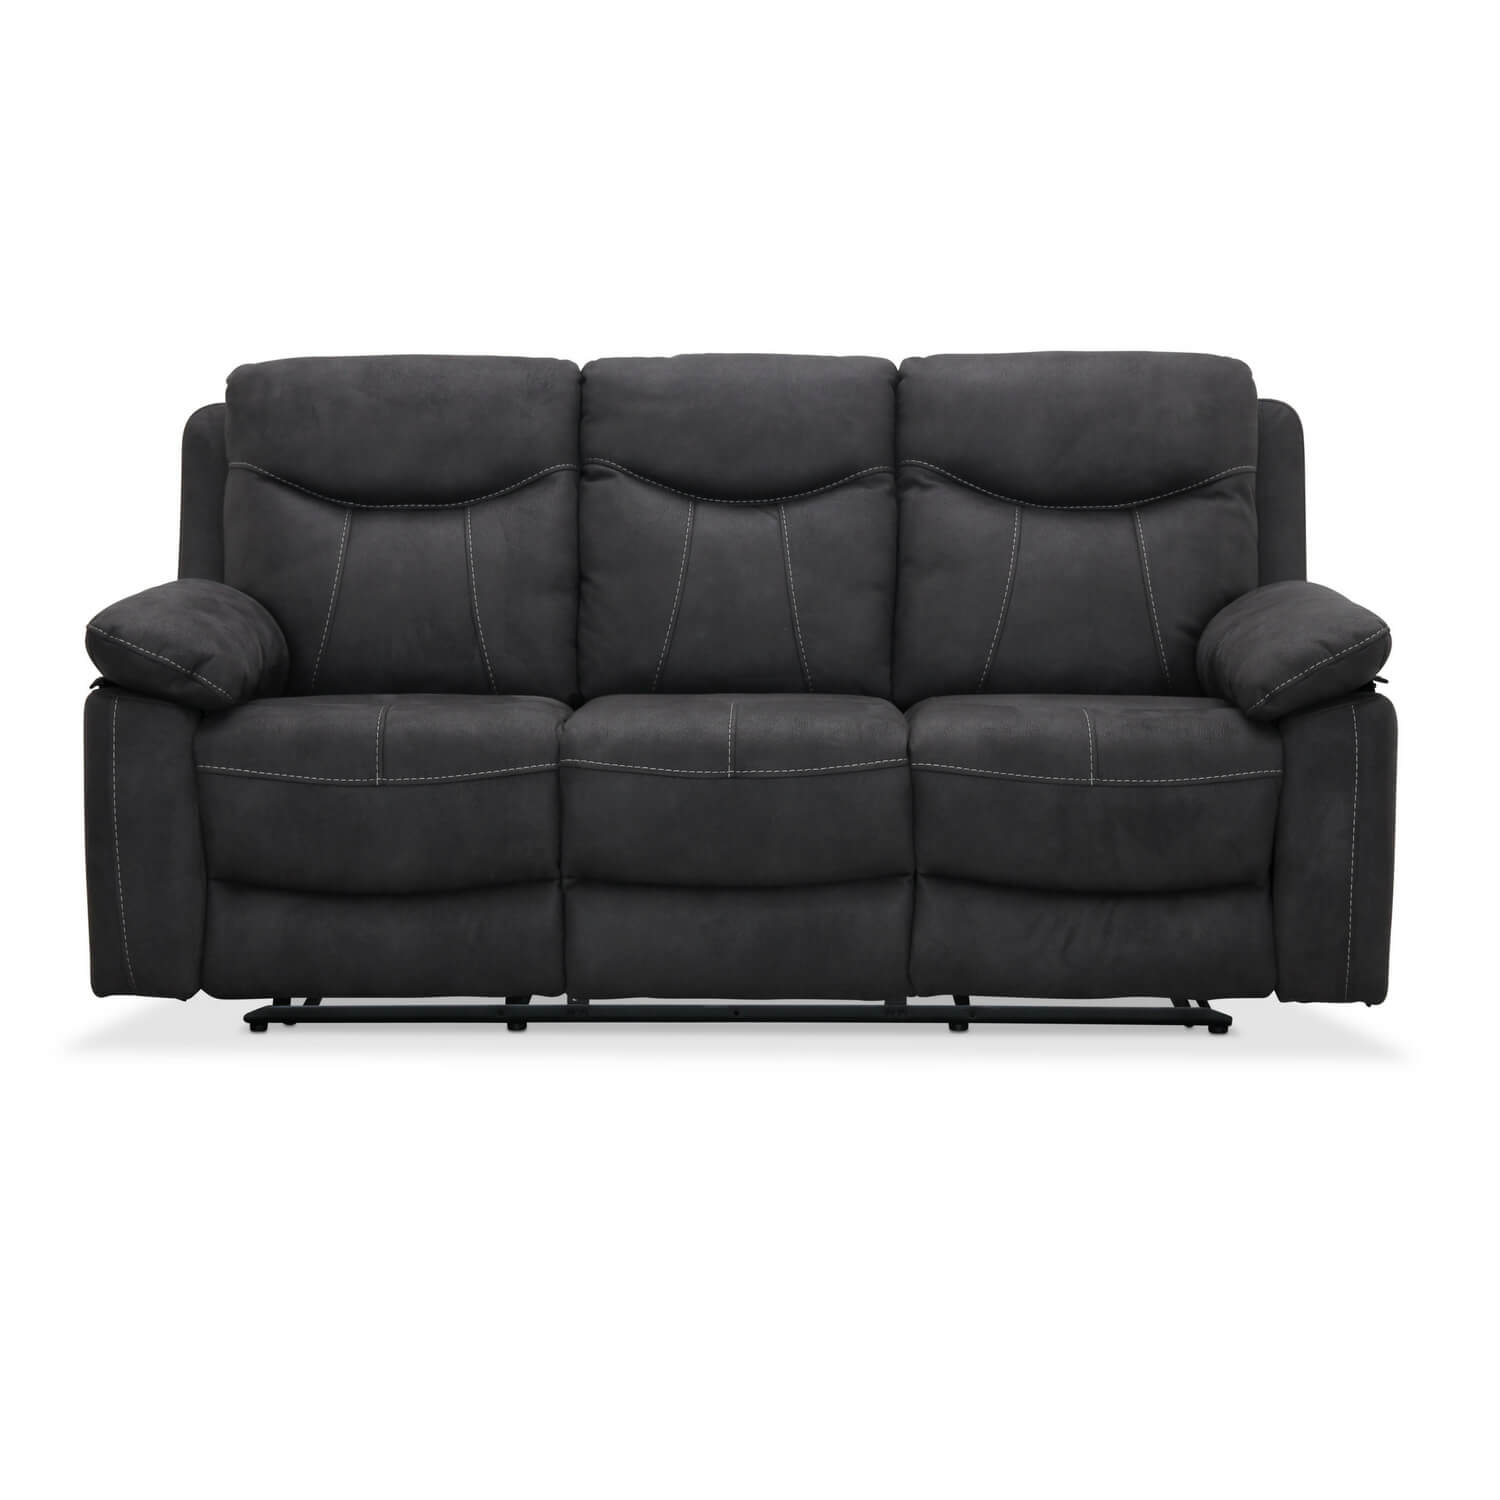 Boston recliner 3 personers biograf sofa, grå stof